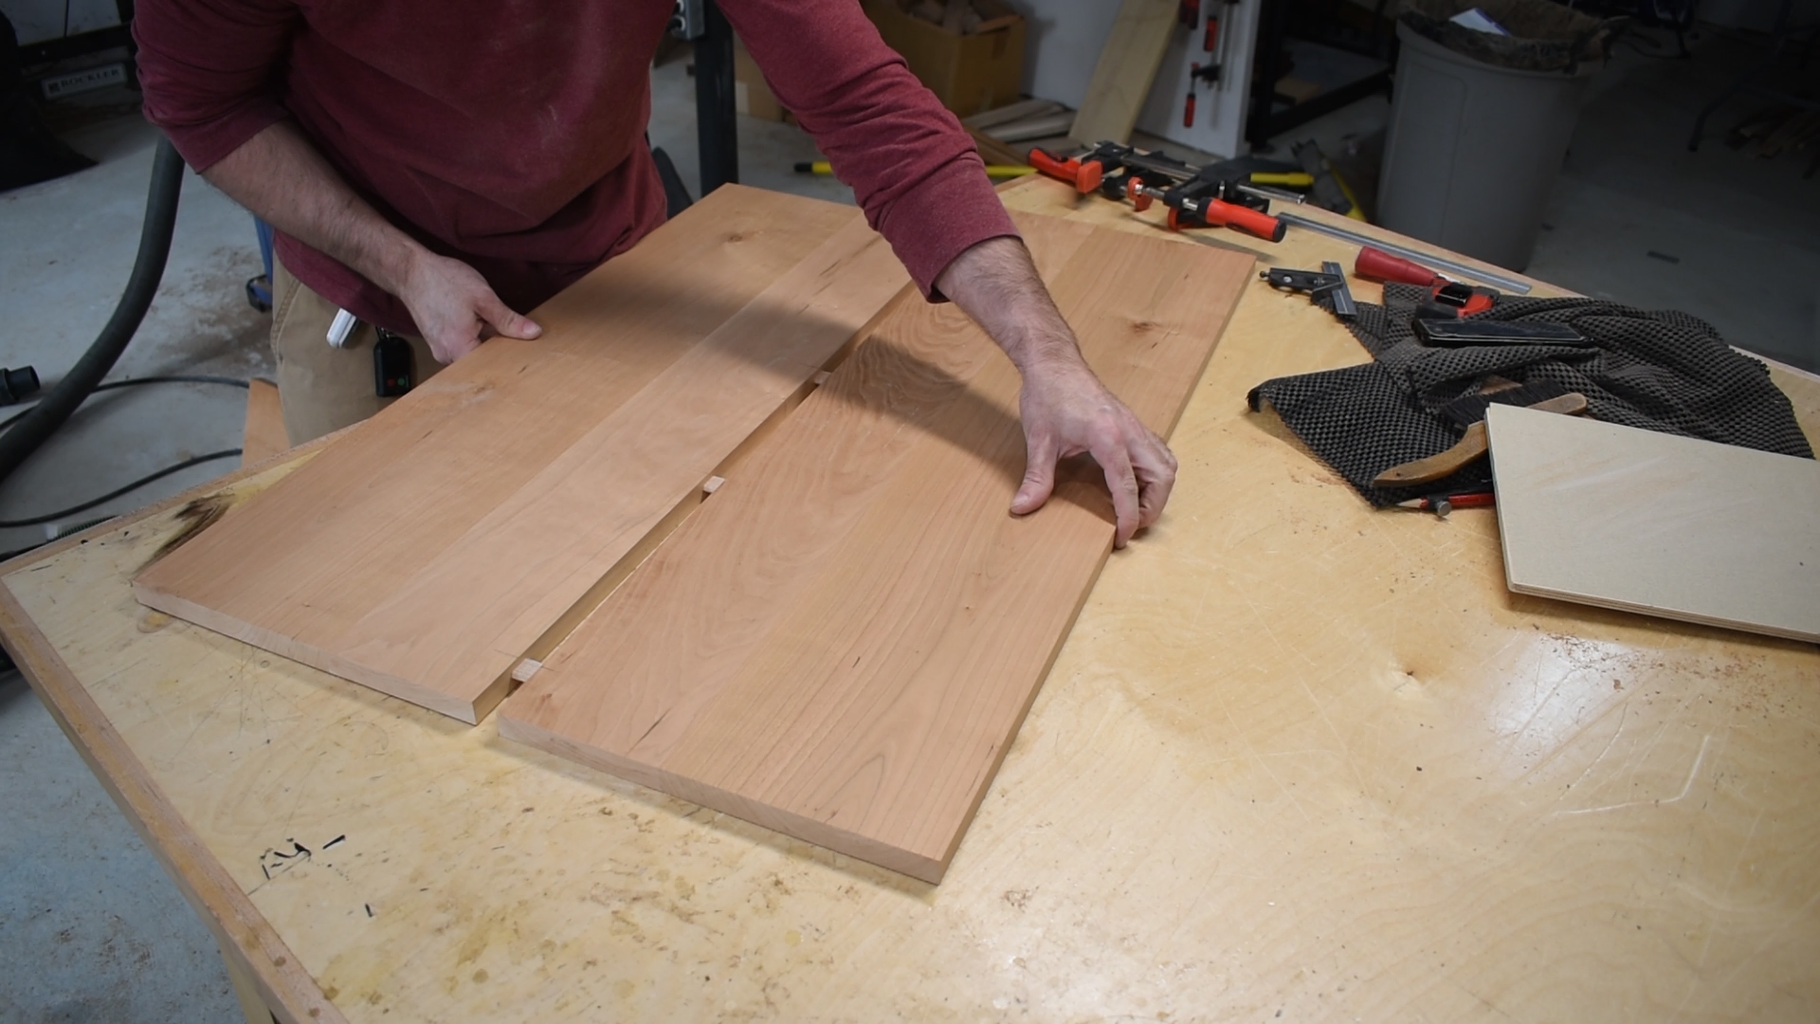 (Optional) Pre-assemble & Engrave the Boards